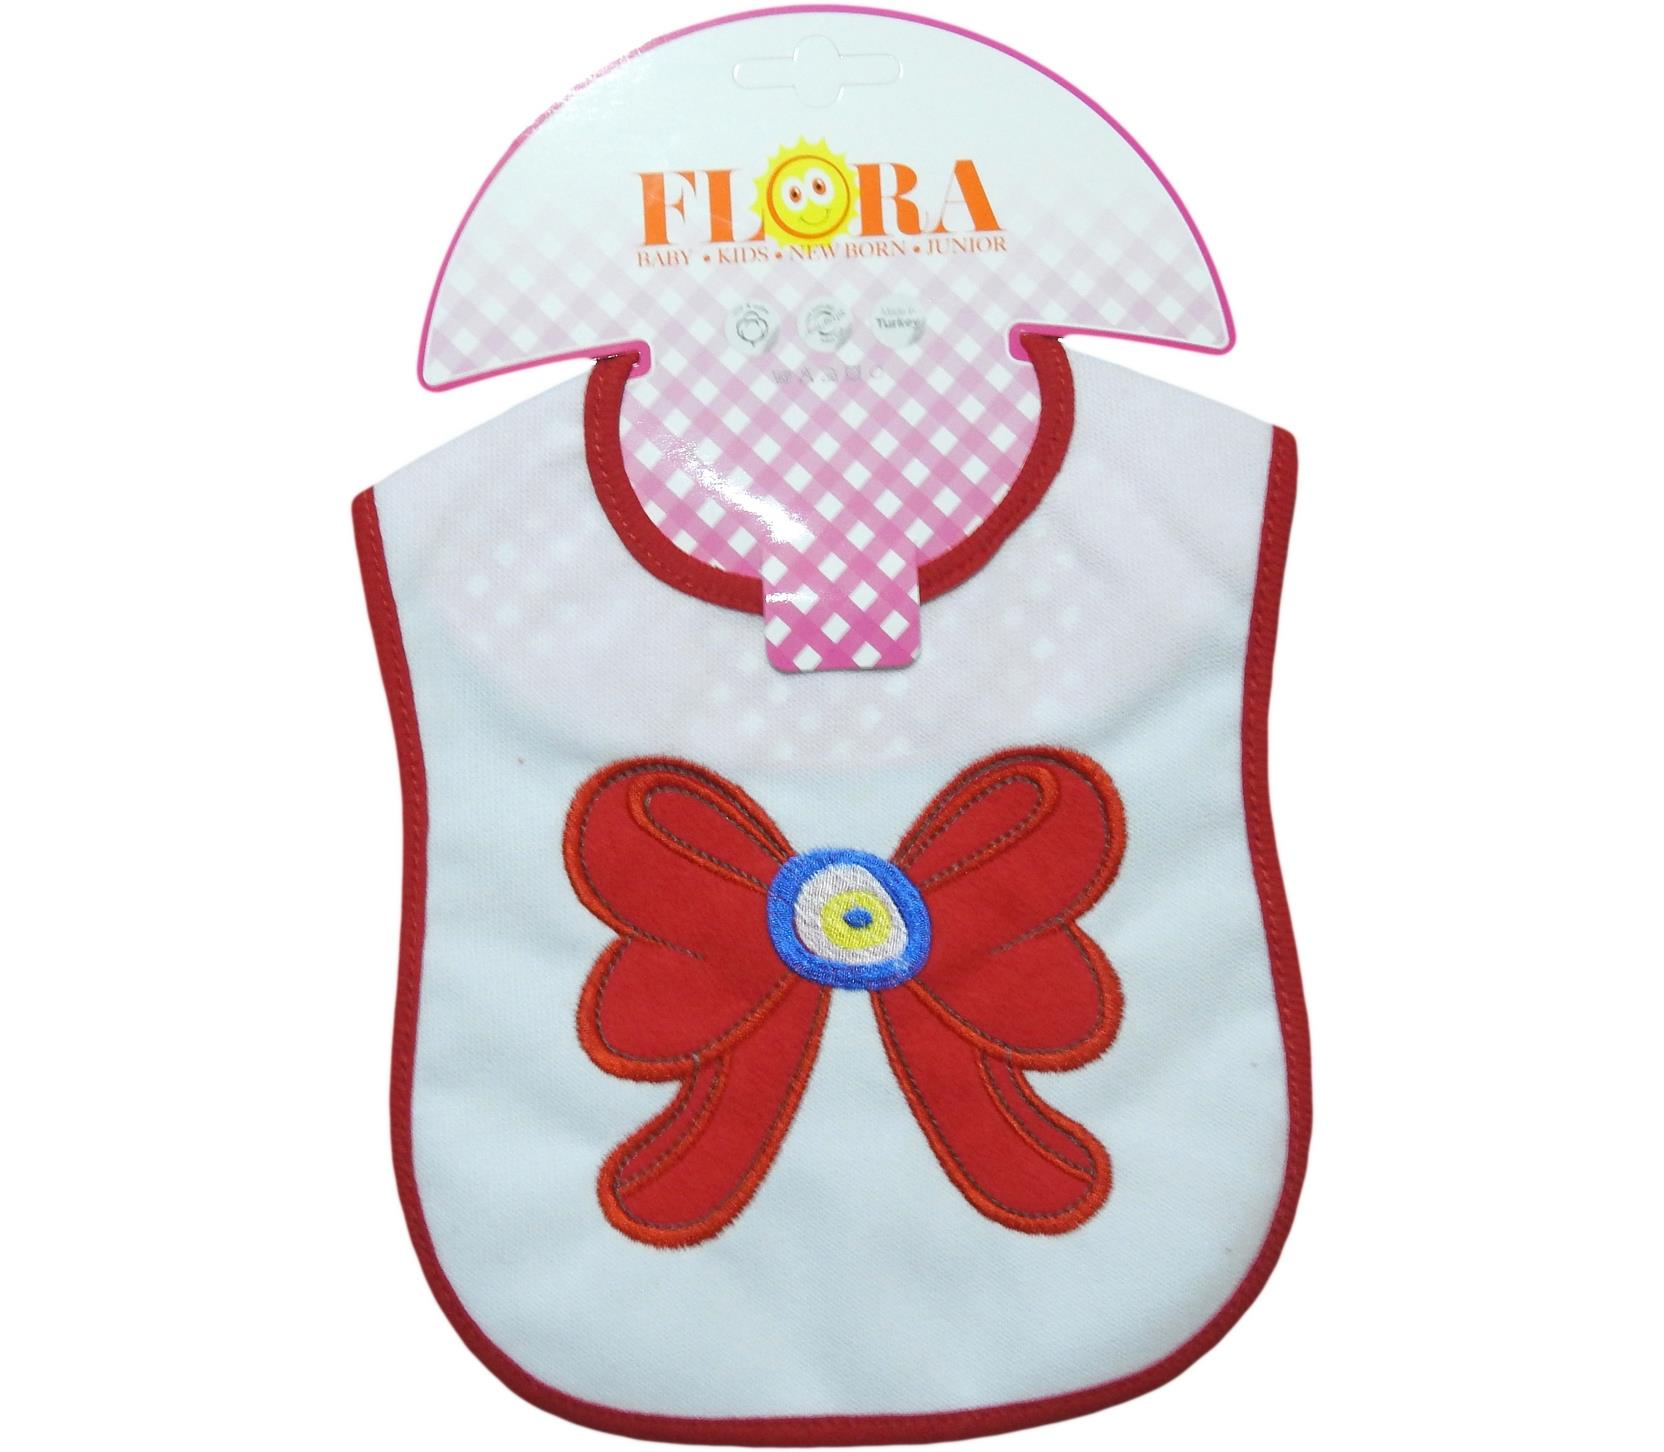 2002 Wholesale ribbon printed bibs for baby product 6 pieces in package